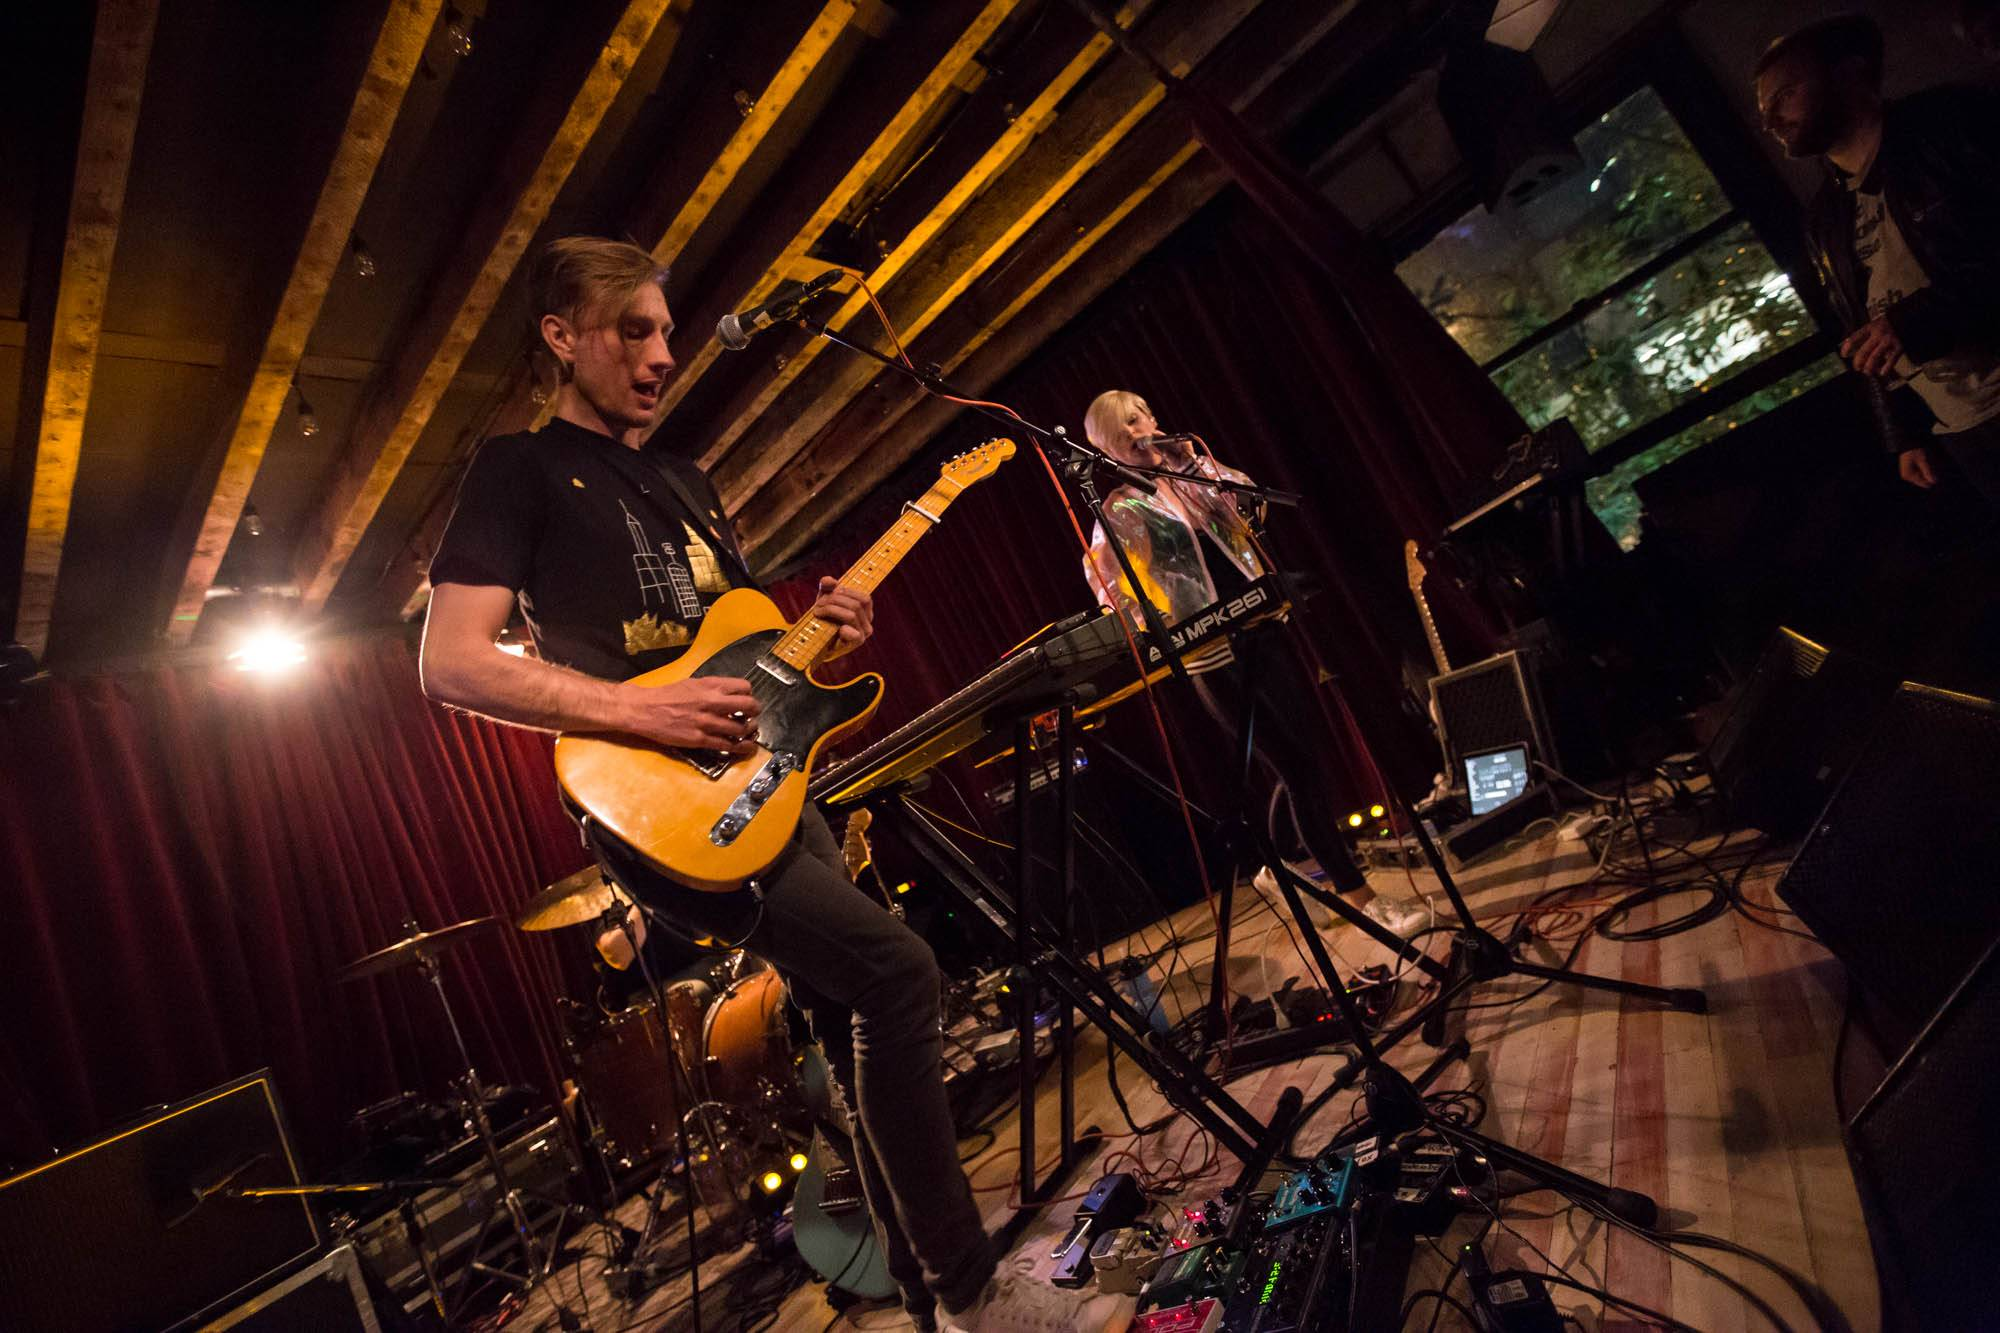 Rococode at the Railway Club, Vancouver, Jun. 10 2017. Kirk Chantraine photo.